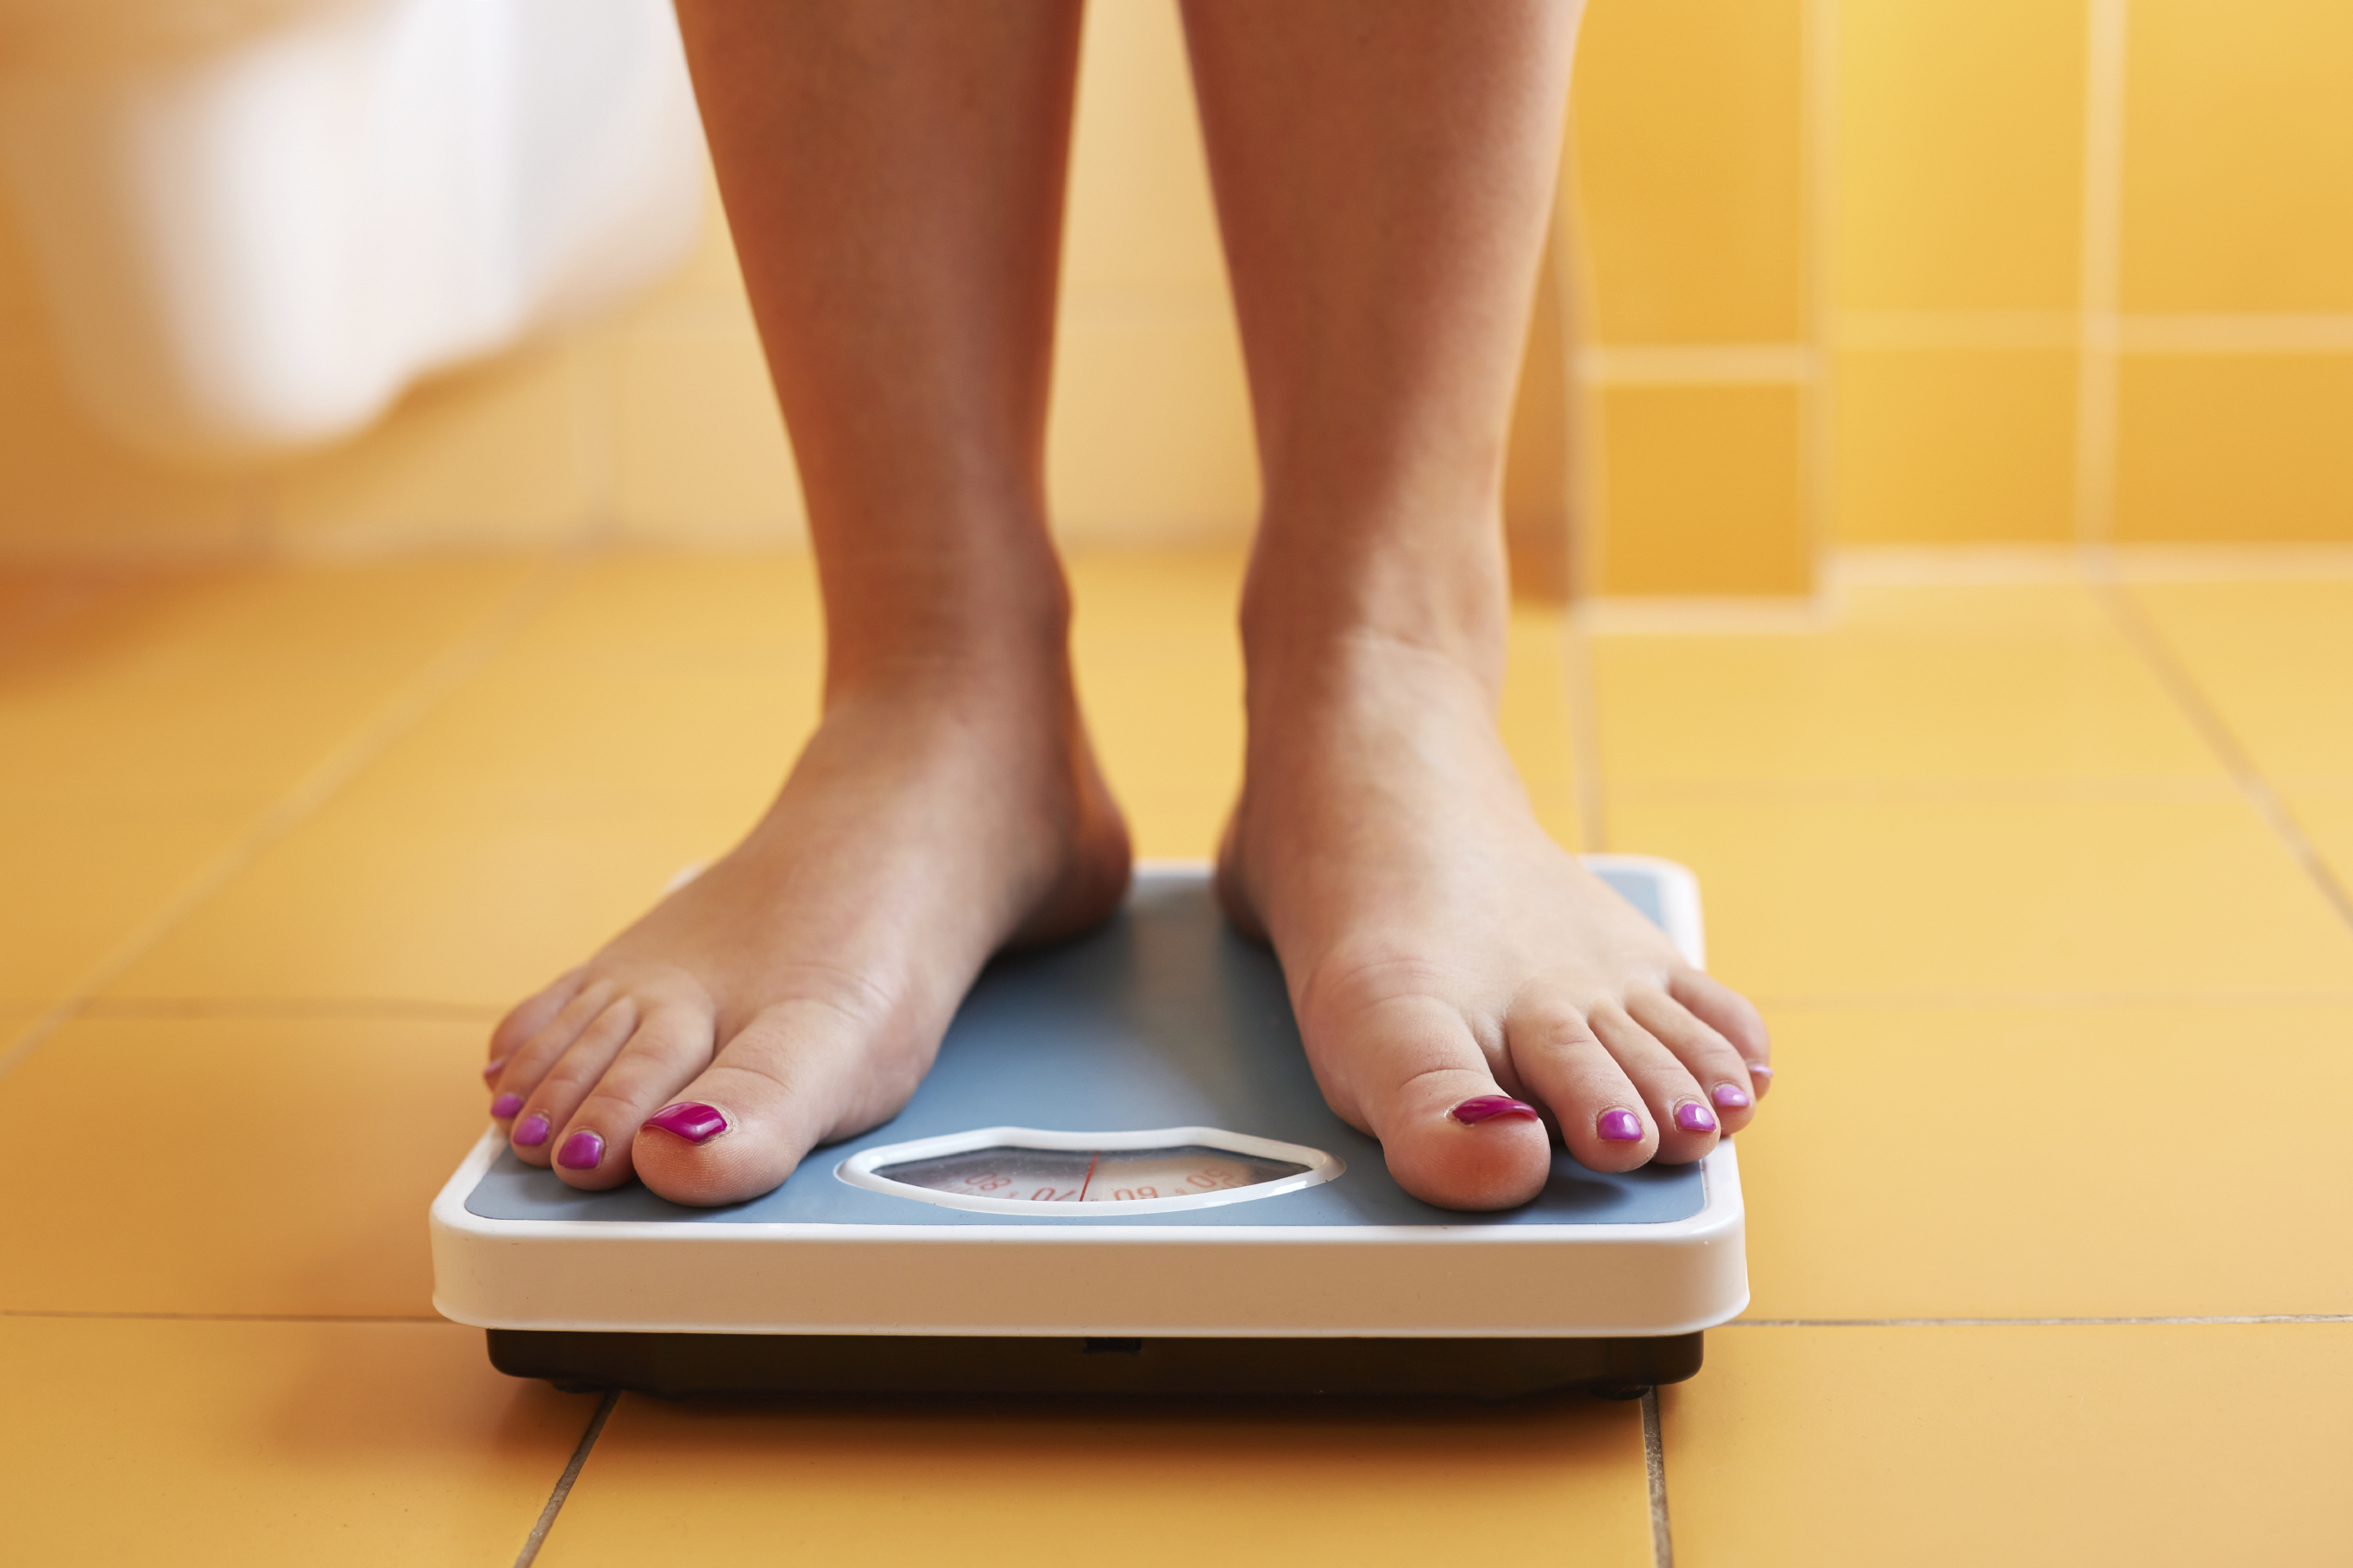 Home Bathroom Scales Daily Weigh Ins Tracking Could Improve Weight Loss Success Cbs News